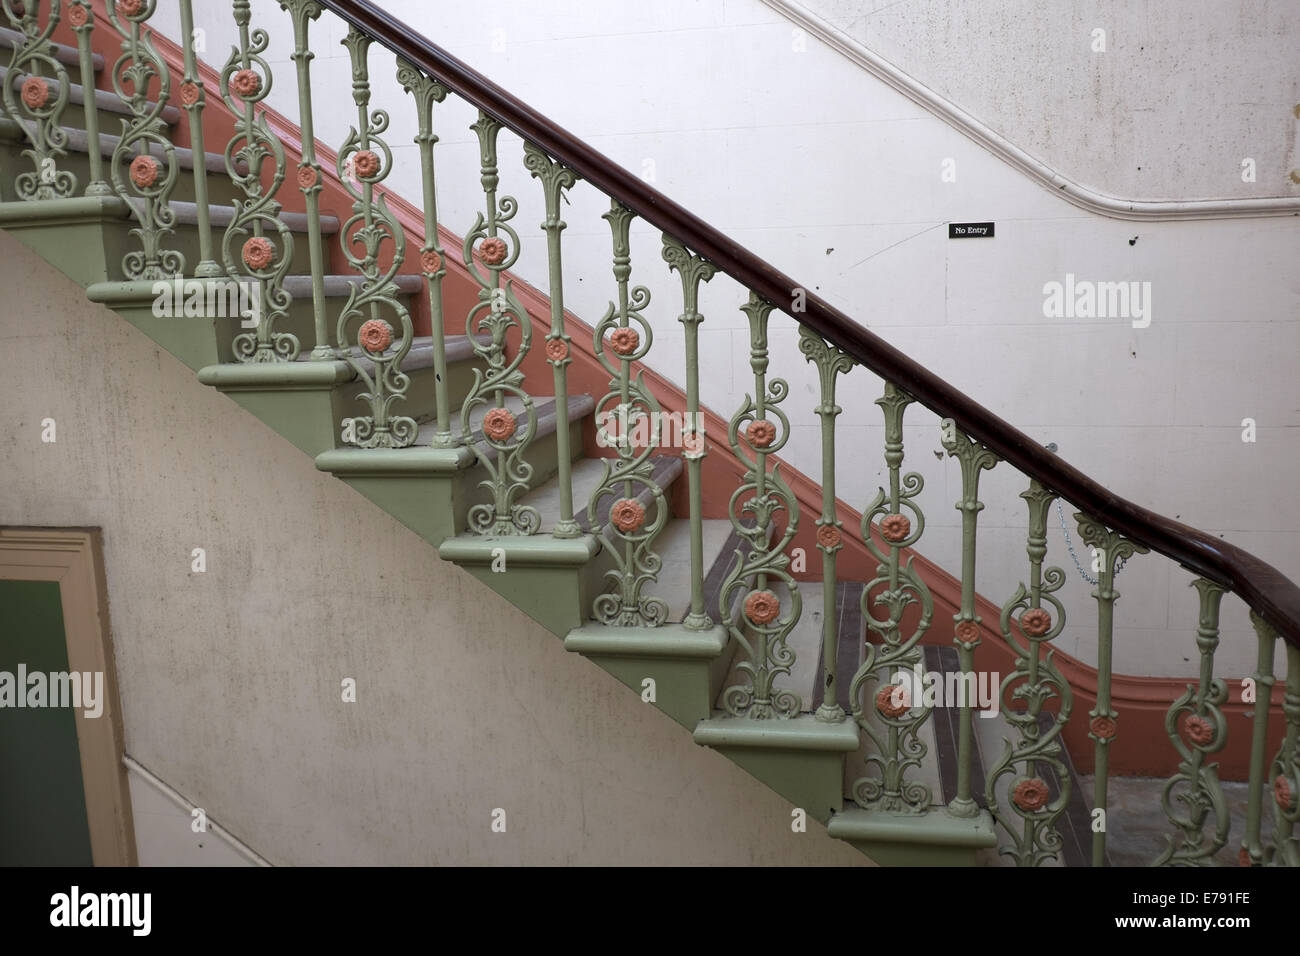 Old Cast Iron Staircase Empty Gloomy Old Building Stock Photo Alamy | Cast Iron Handrails For Stairs | Baluster Curved Stylish Overview Stair | 1920'S | Iron Railing | Exterior Stair | Georgian